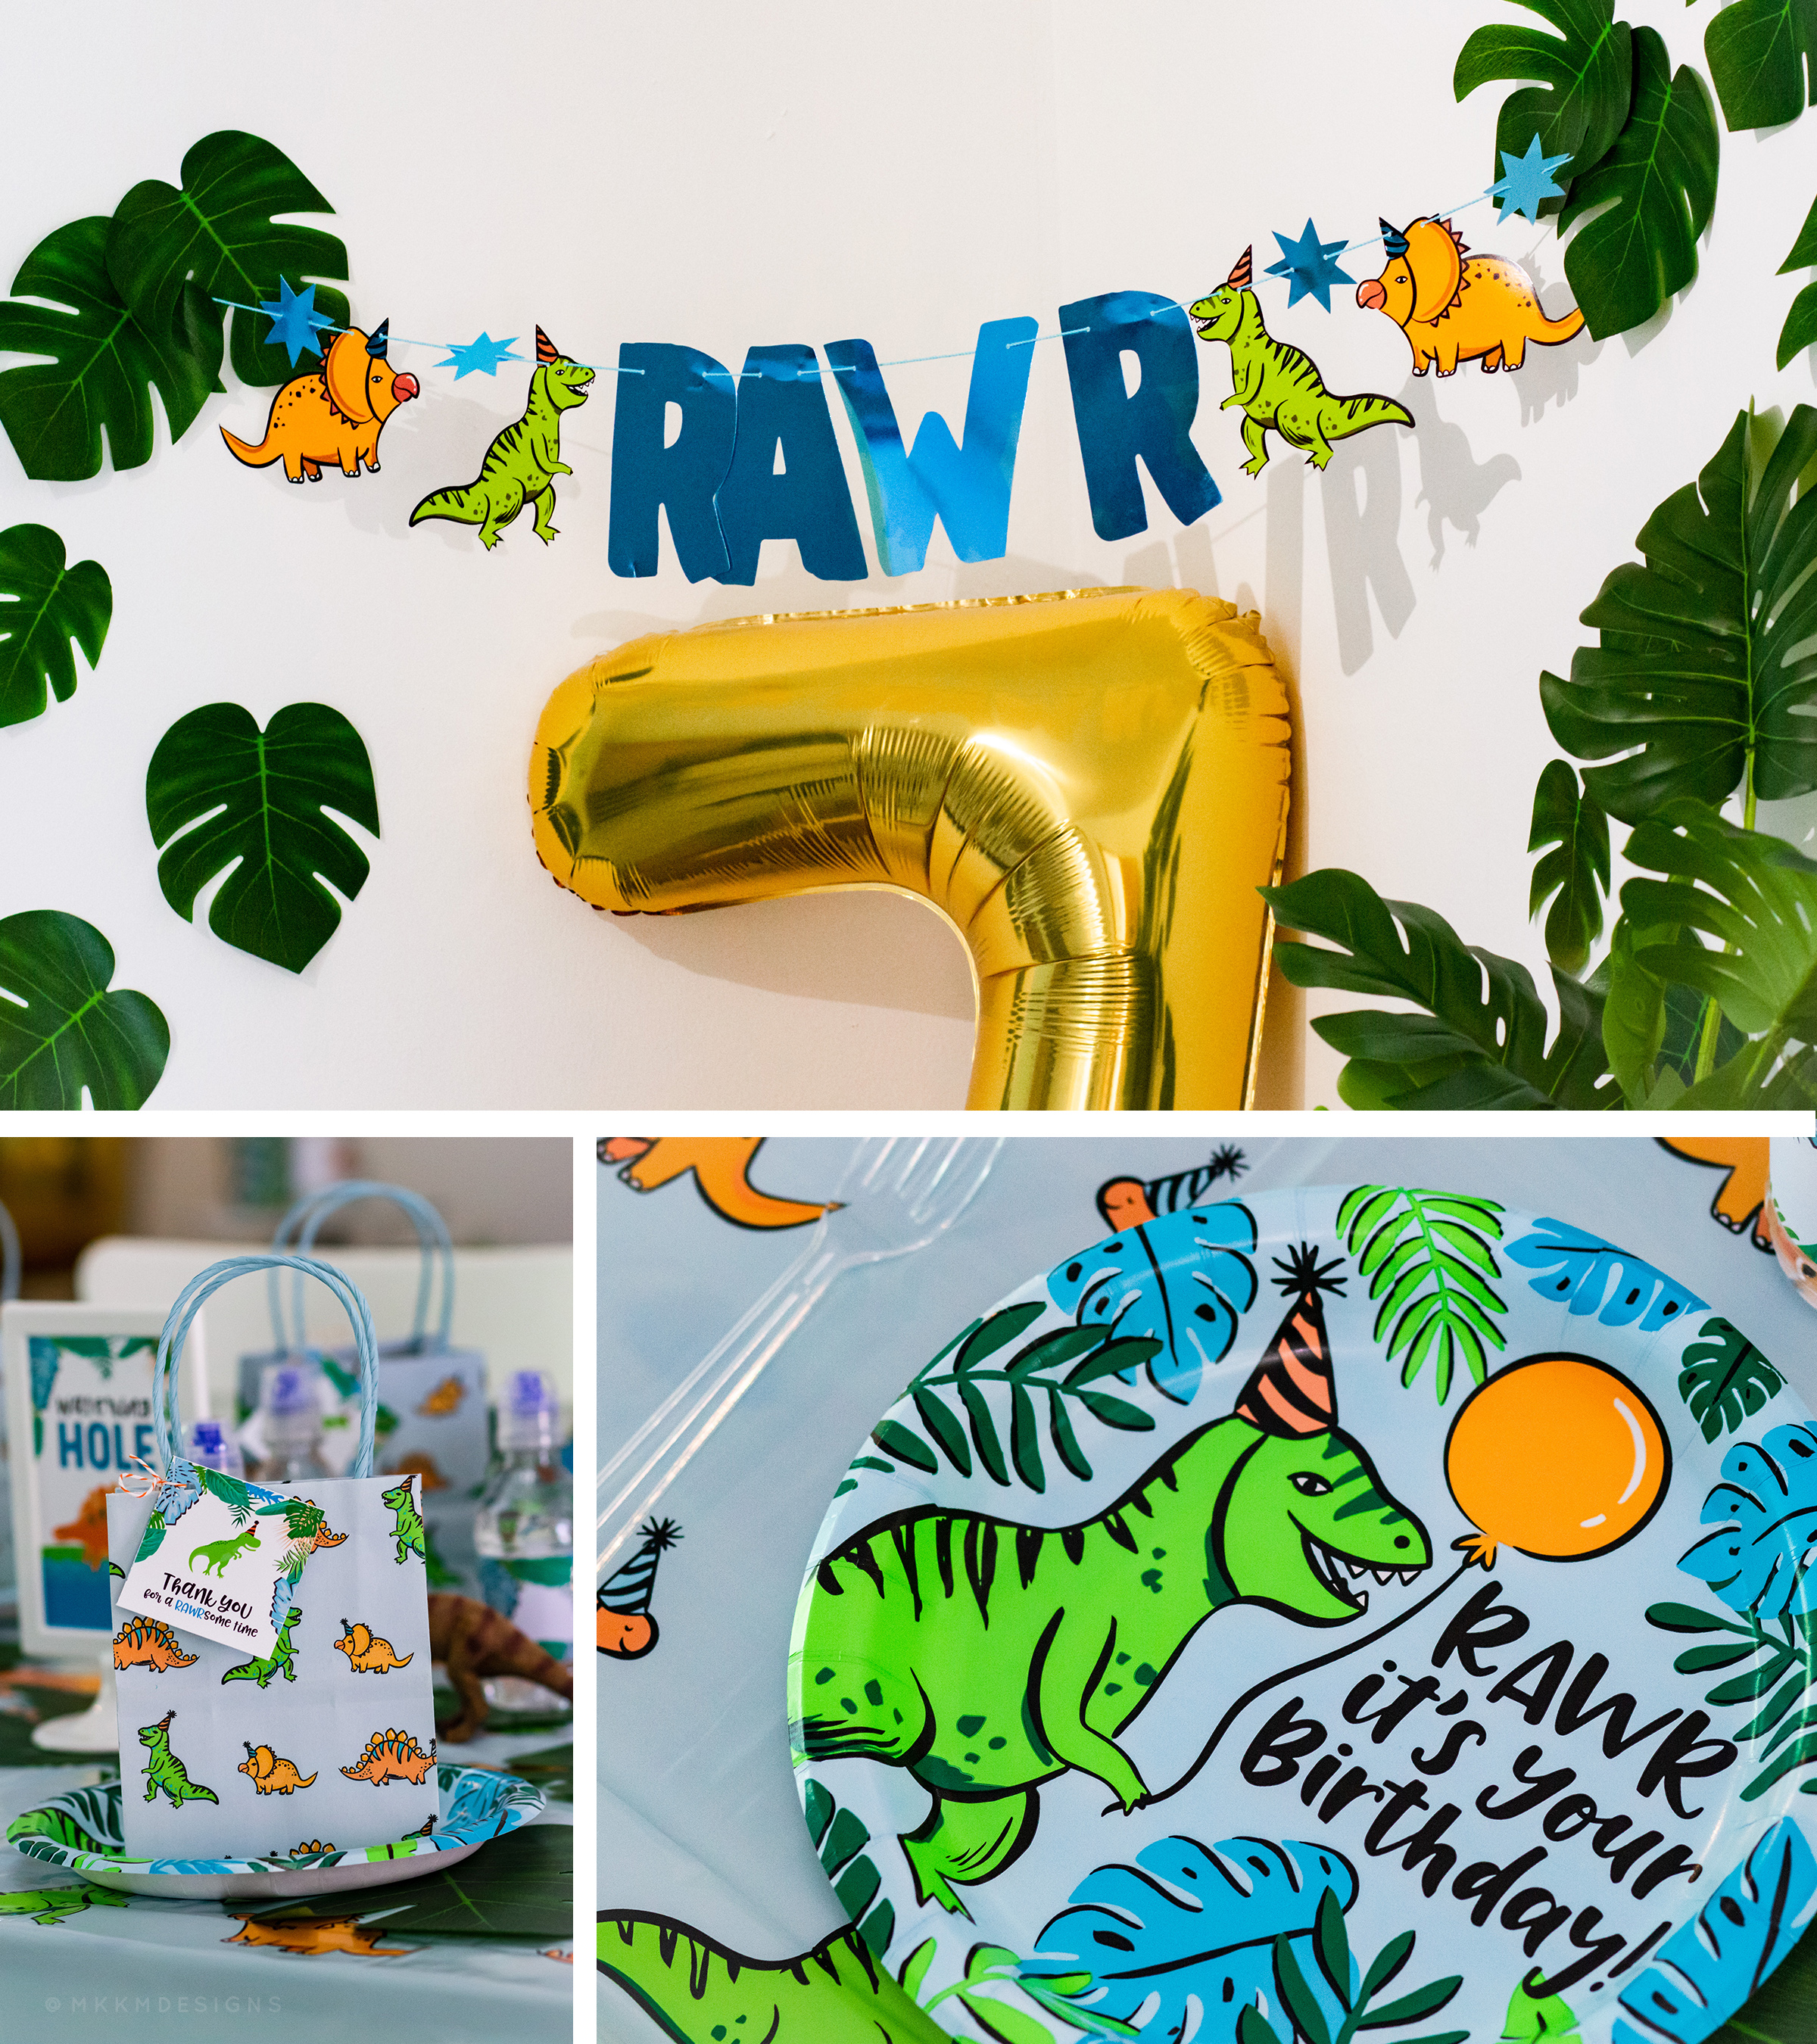 These Target party supplies matched perfectly with our Tropical dinosaur party. Get some inspiration for planning your own dinosaur party from our blog.